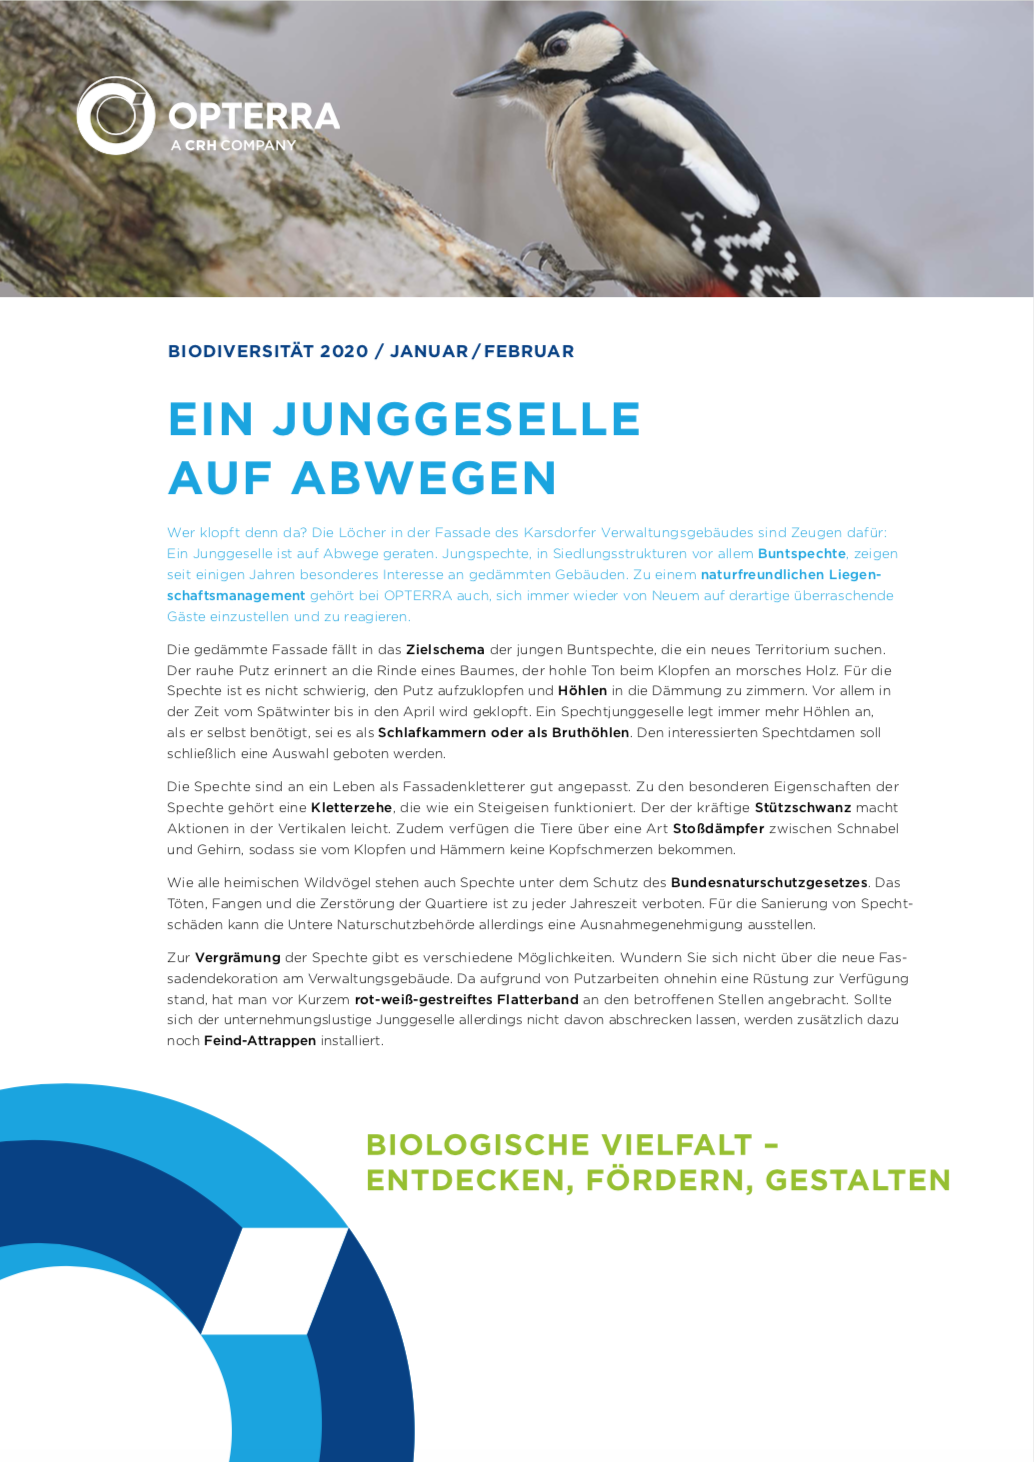 teaser-biodiversitaet-2020-jan-feb